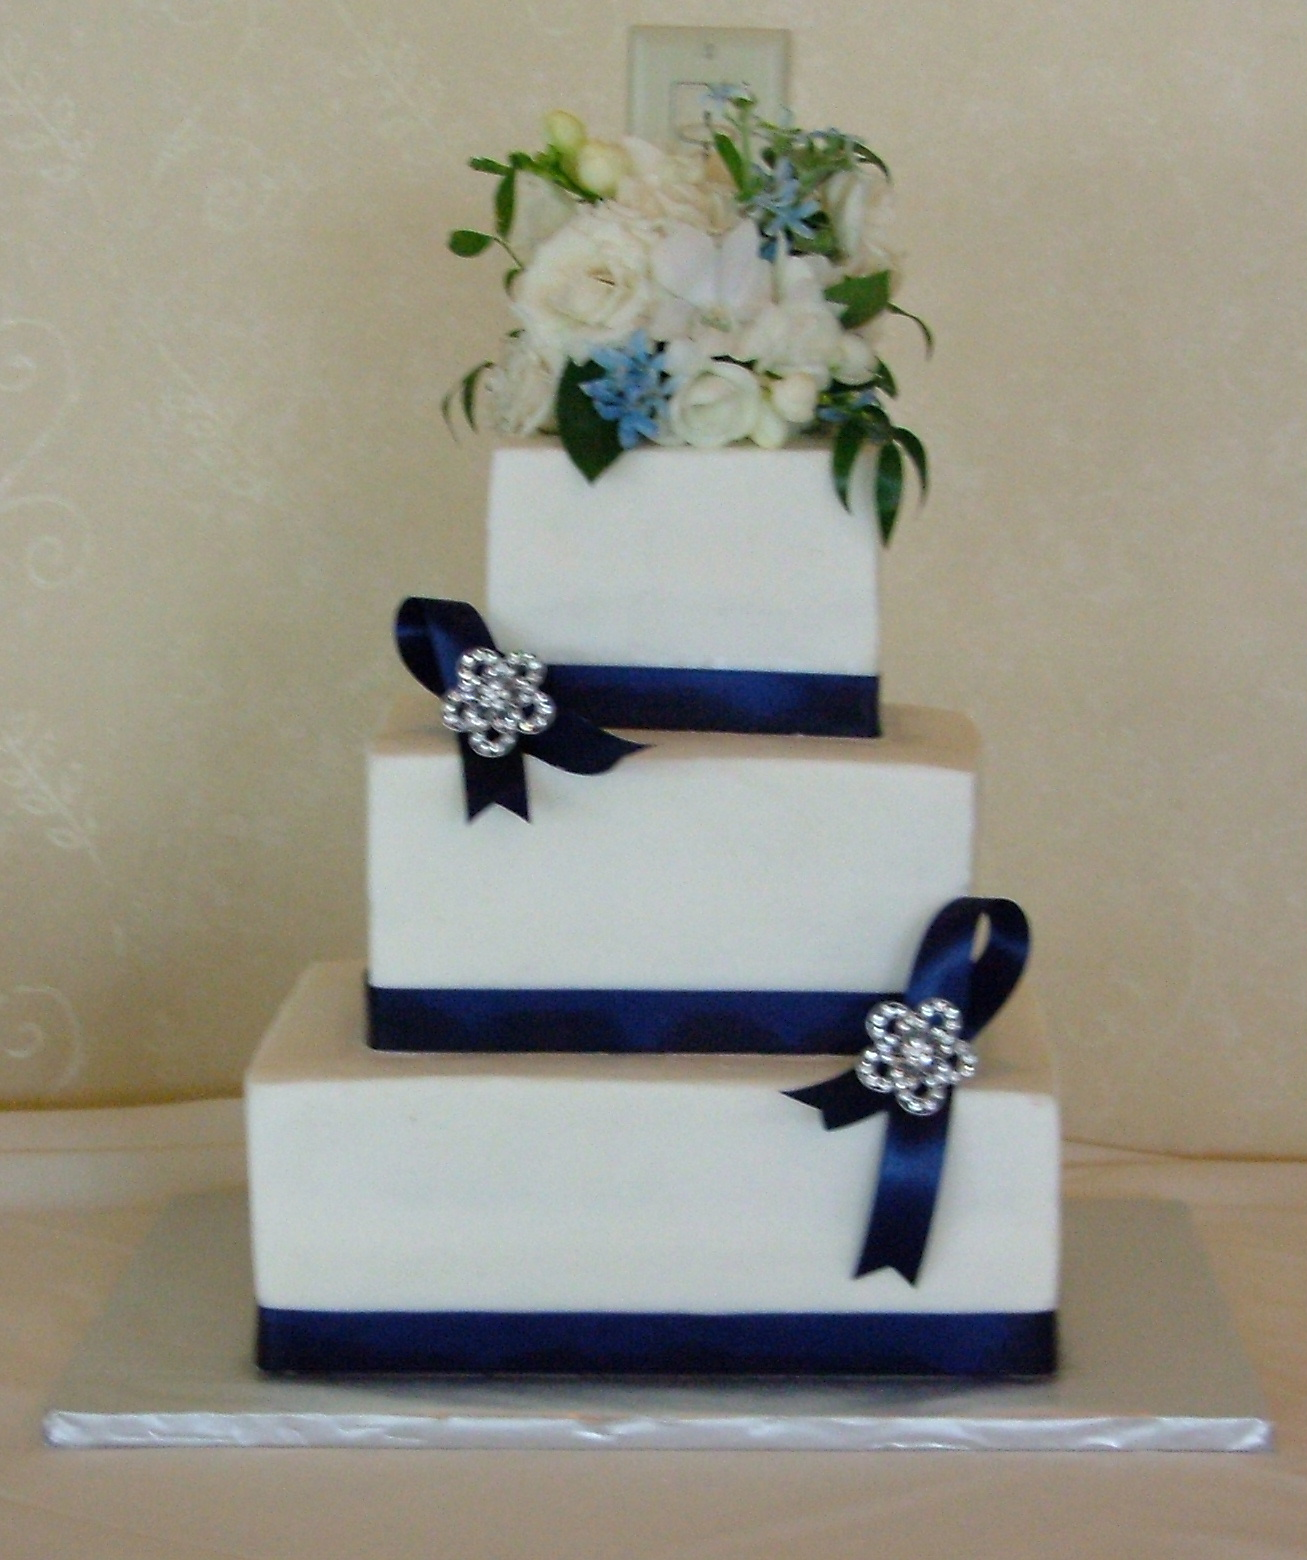 king soopers bakery wedding cakes living room decorating ideas baby shower cakes king soopers 16646